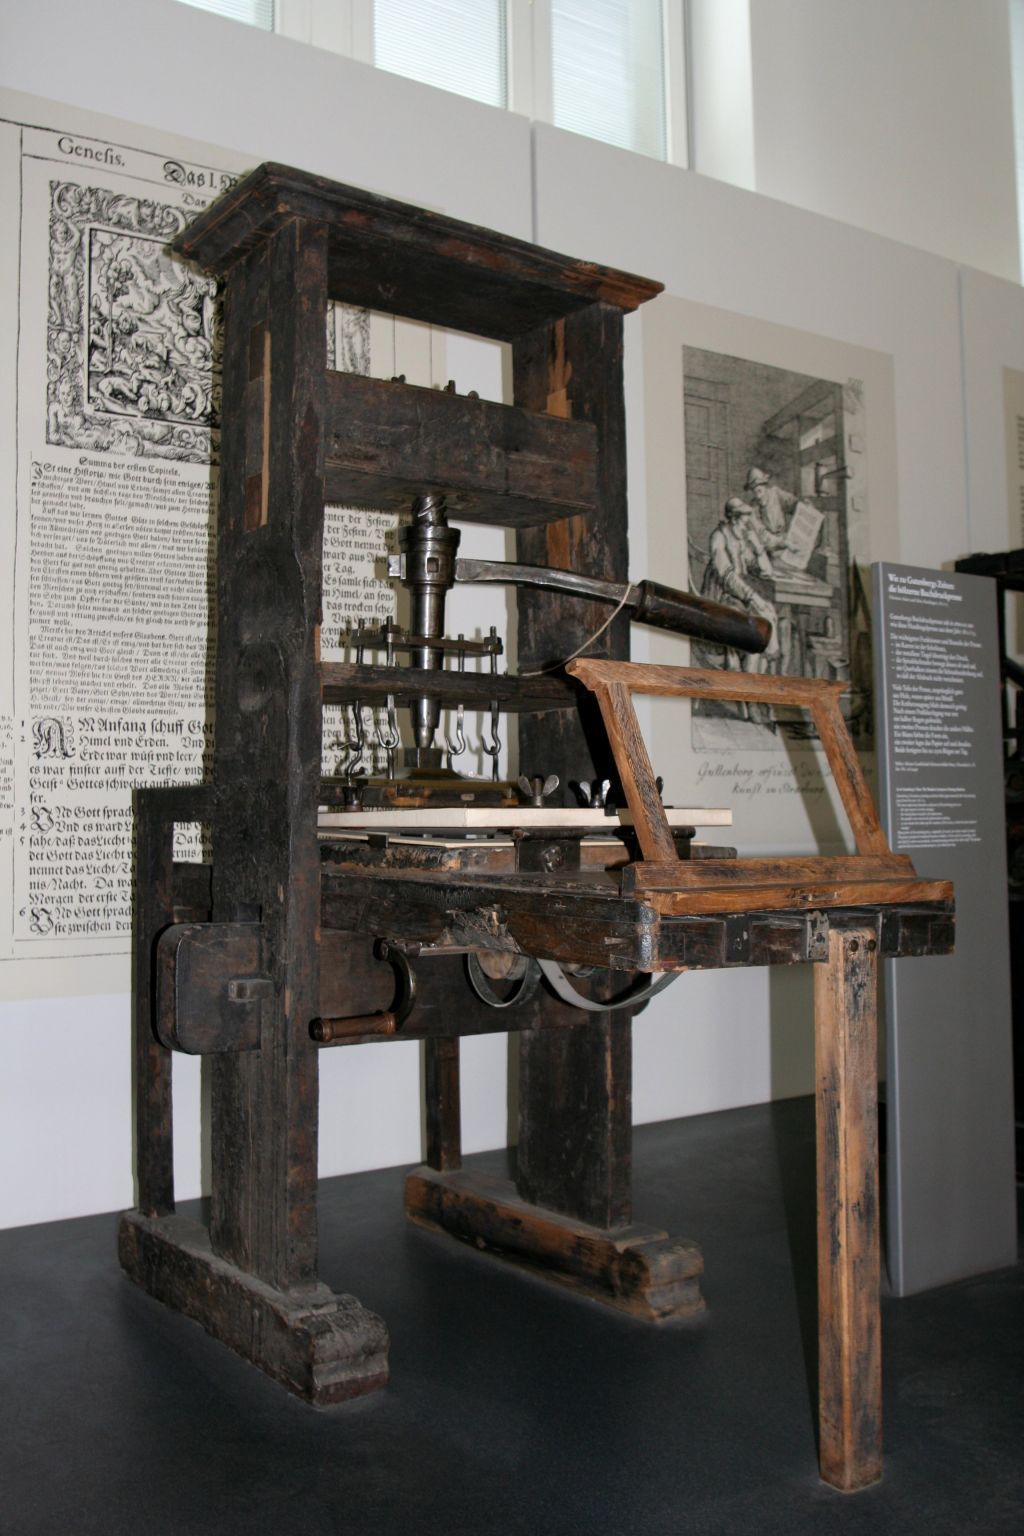 impact printing press essay The printing press had a great influence we will write a custom essay sample on the printing press the coming of the book: the impact of printing 1450.